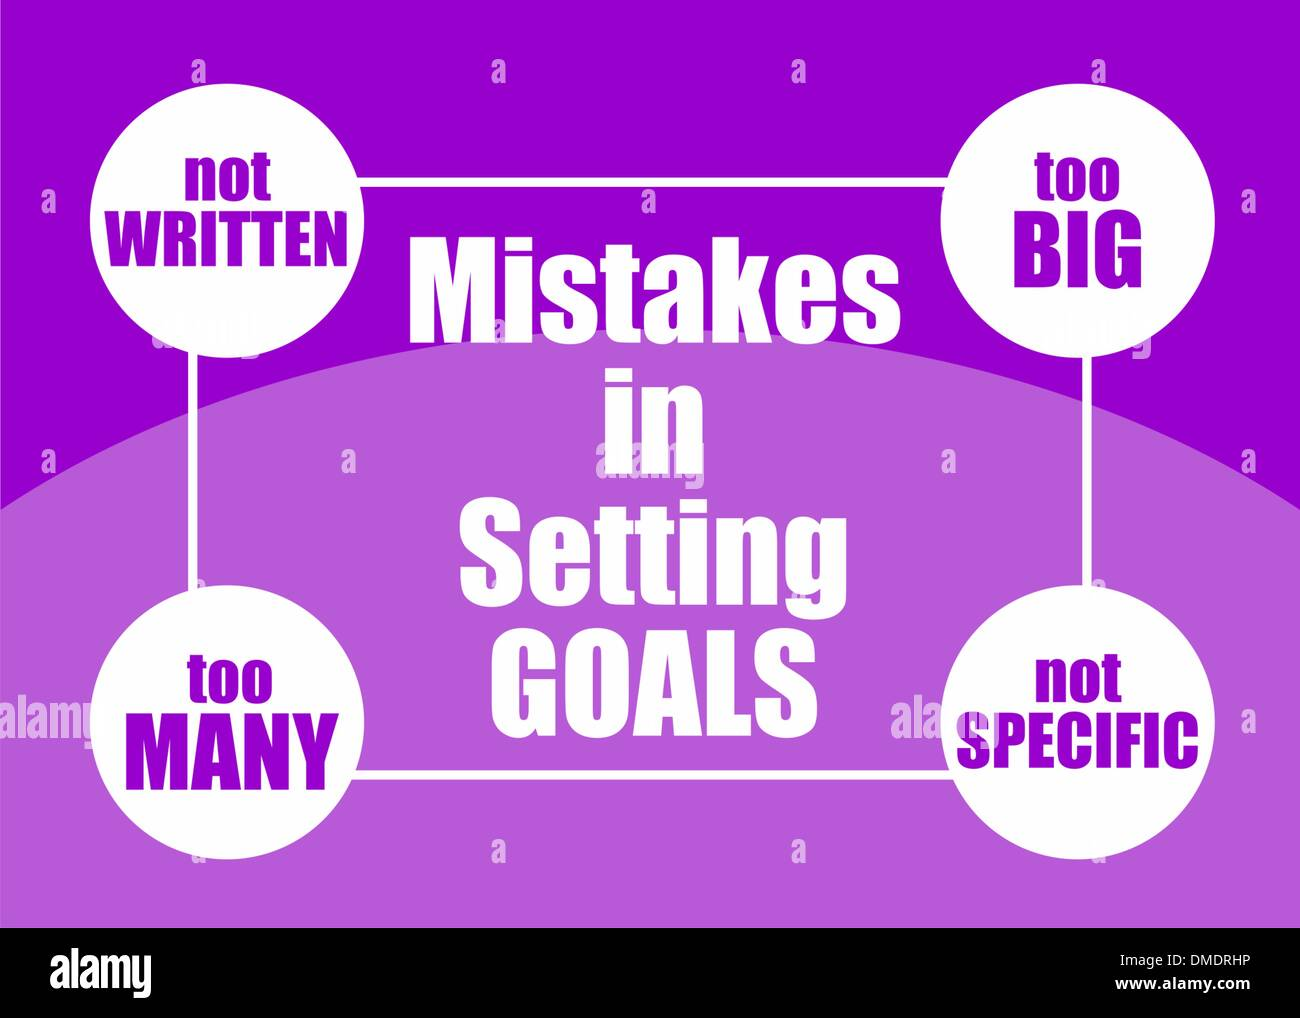 Mistakes in setting goals - Stock Image